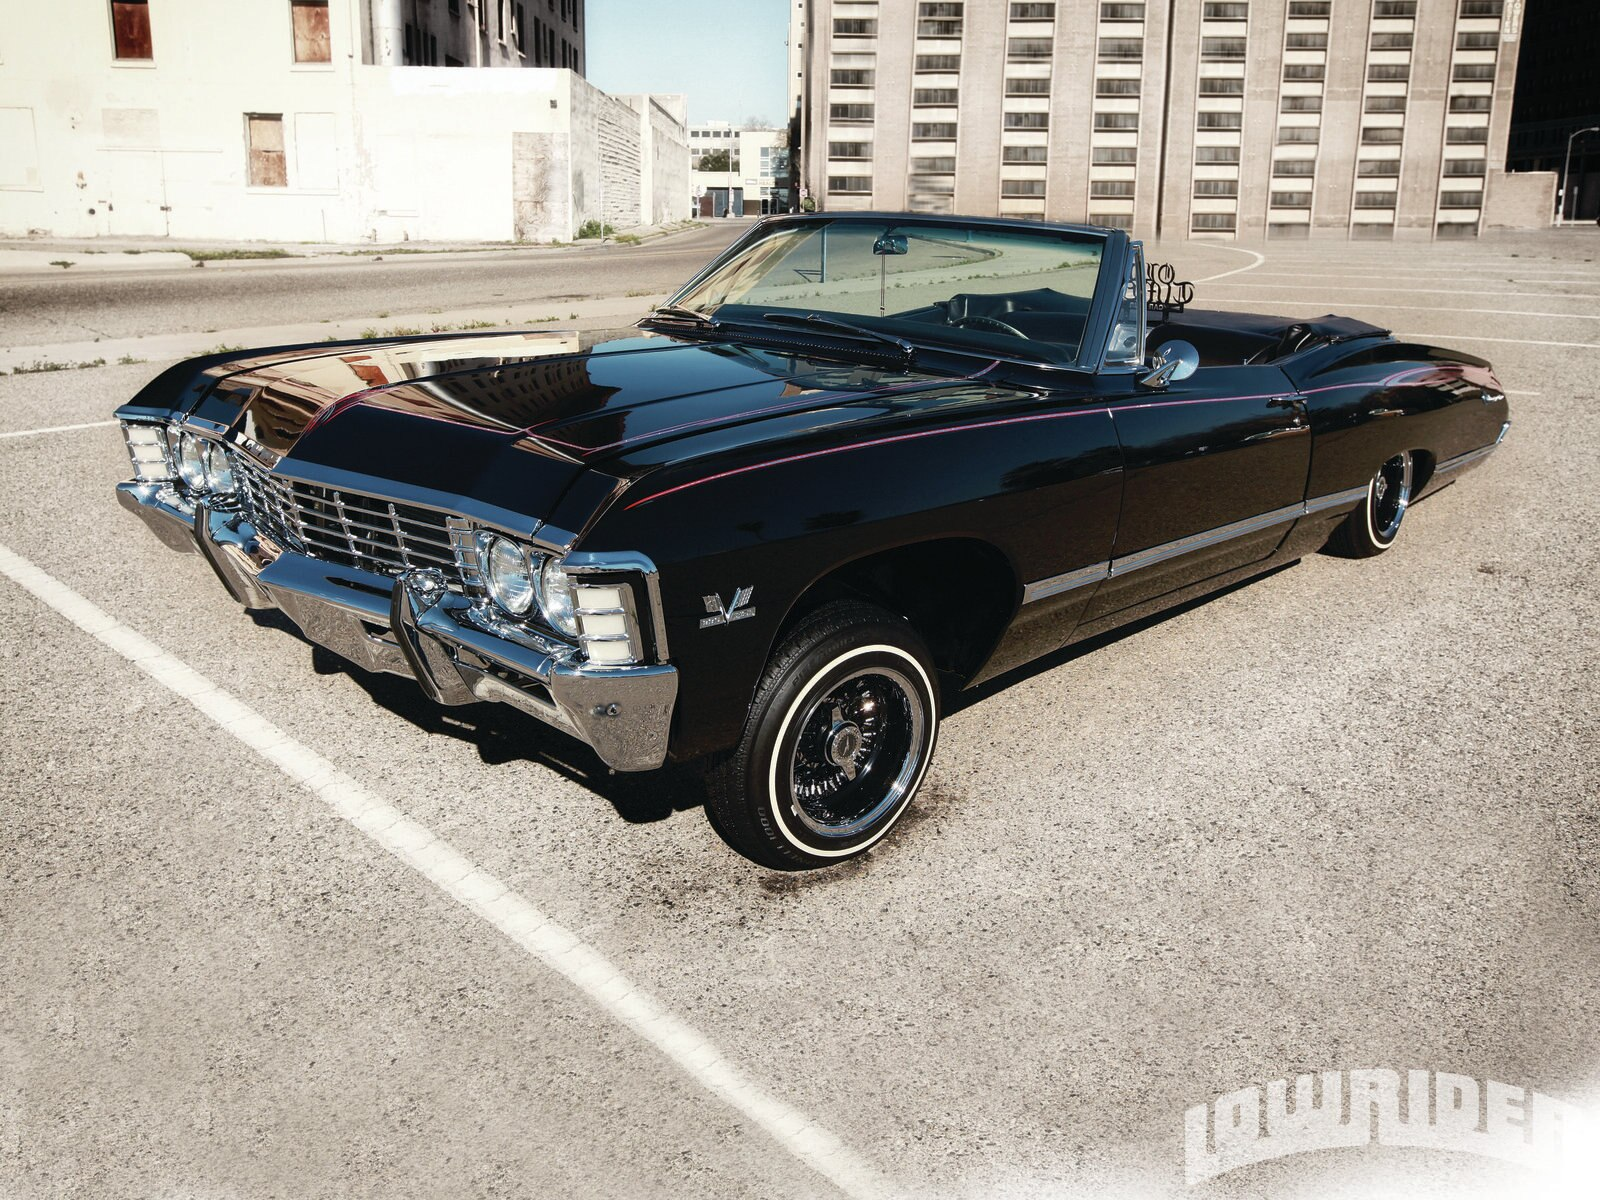 Craigslist Ny Cars And Trucks >> 1967 Impala Convertible For Sale Craigslist | Autos Weblog